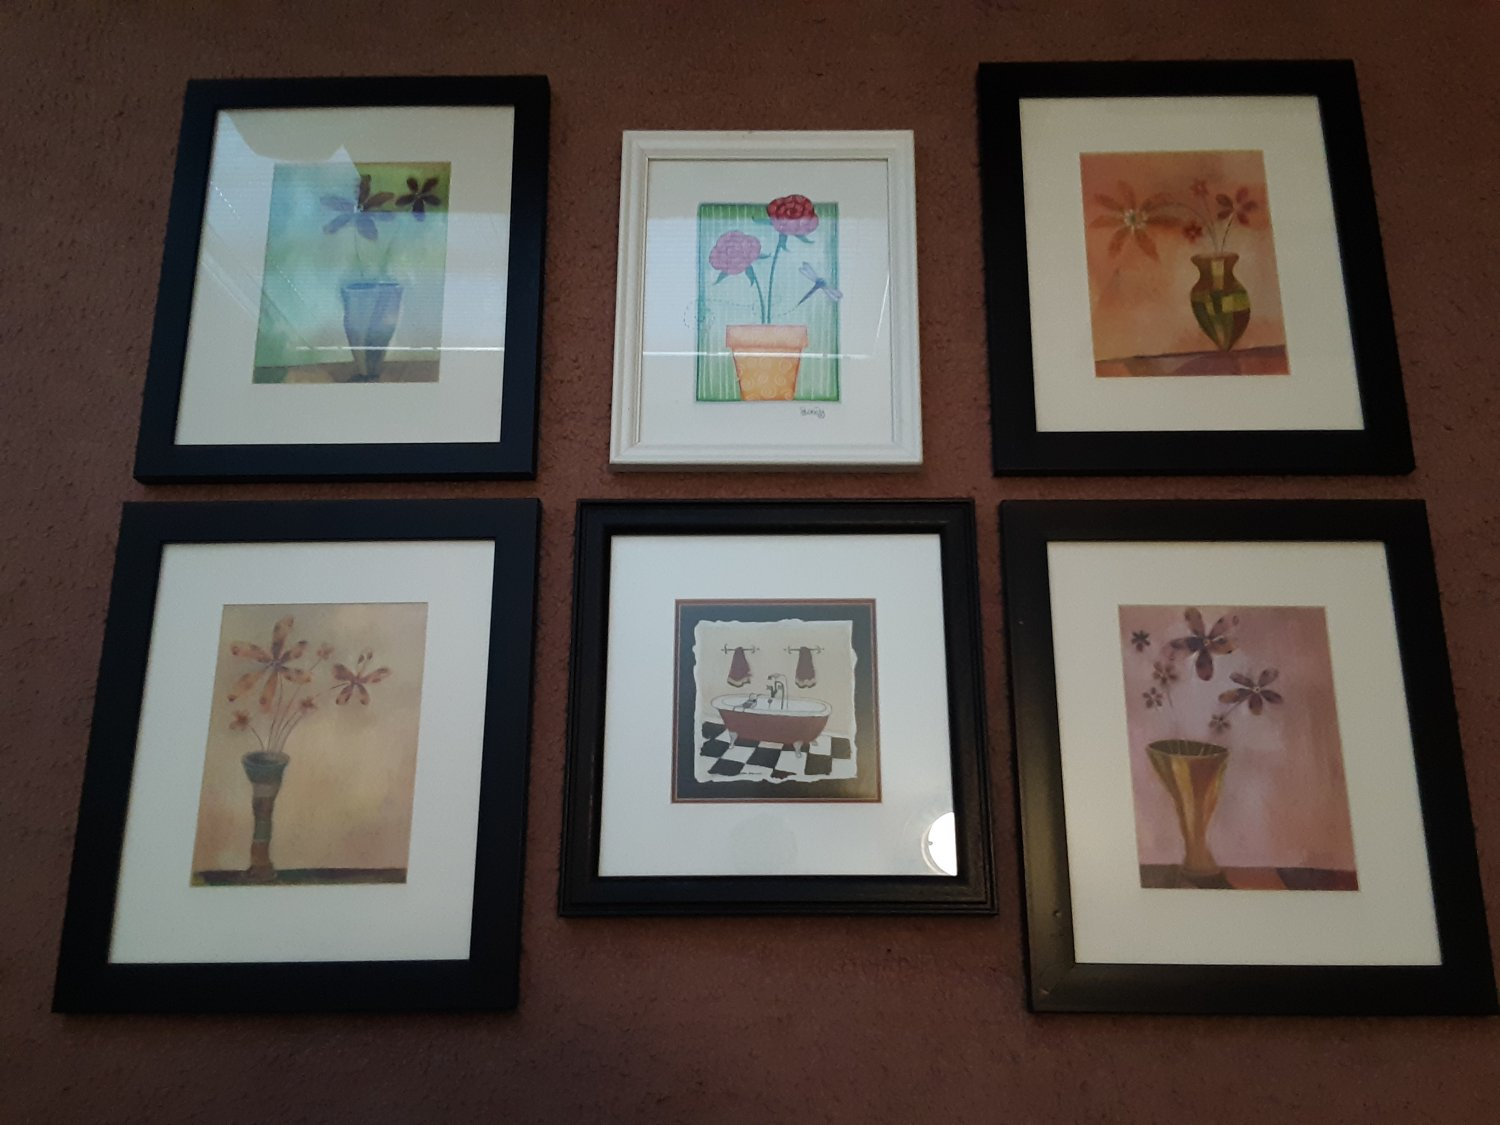 Bundle of 6 Wood Framed and Matted Pictures - Home Decor!